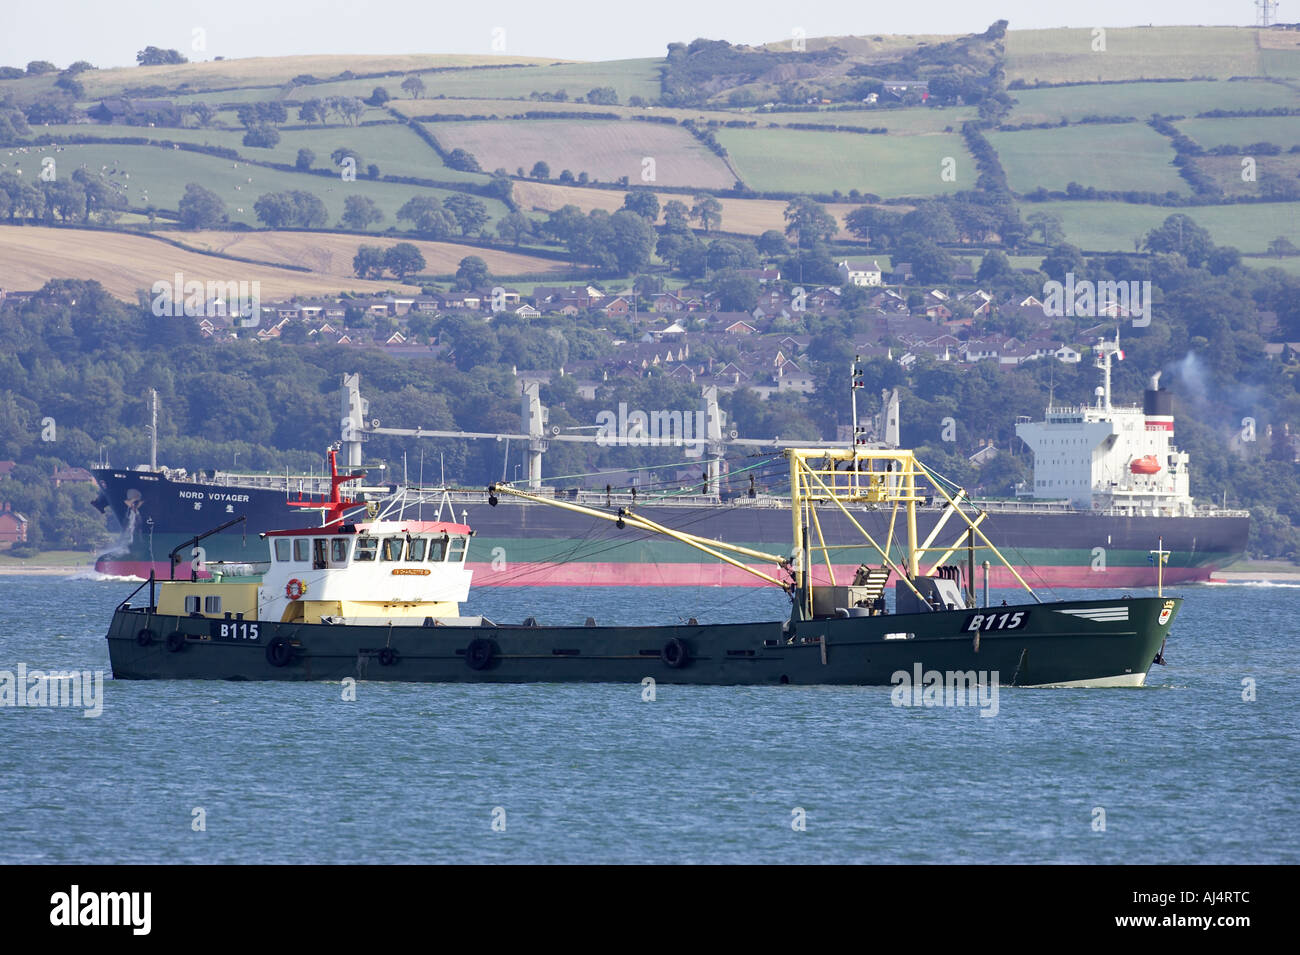 nord voyager bulk carrier ship passes large mussel fishing boat trawling dregding for mussels at sea off holywood - Stock Image